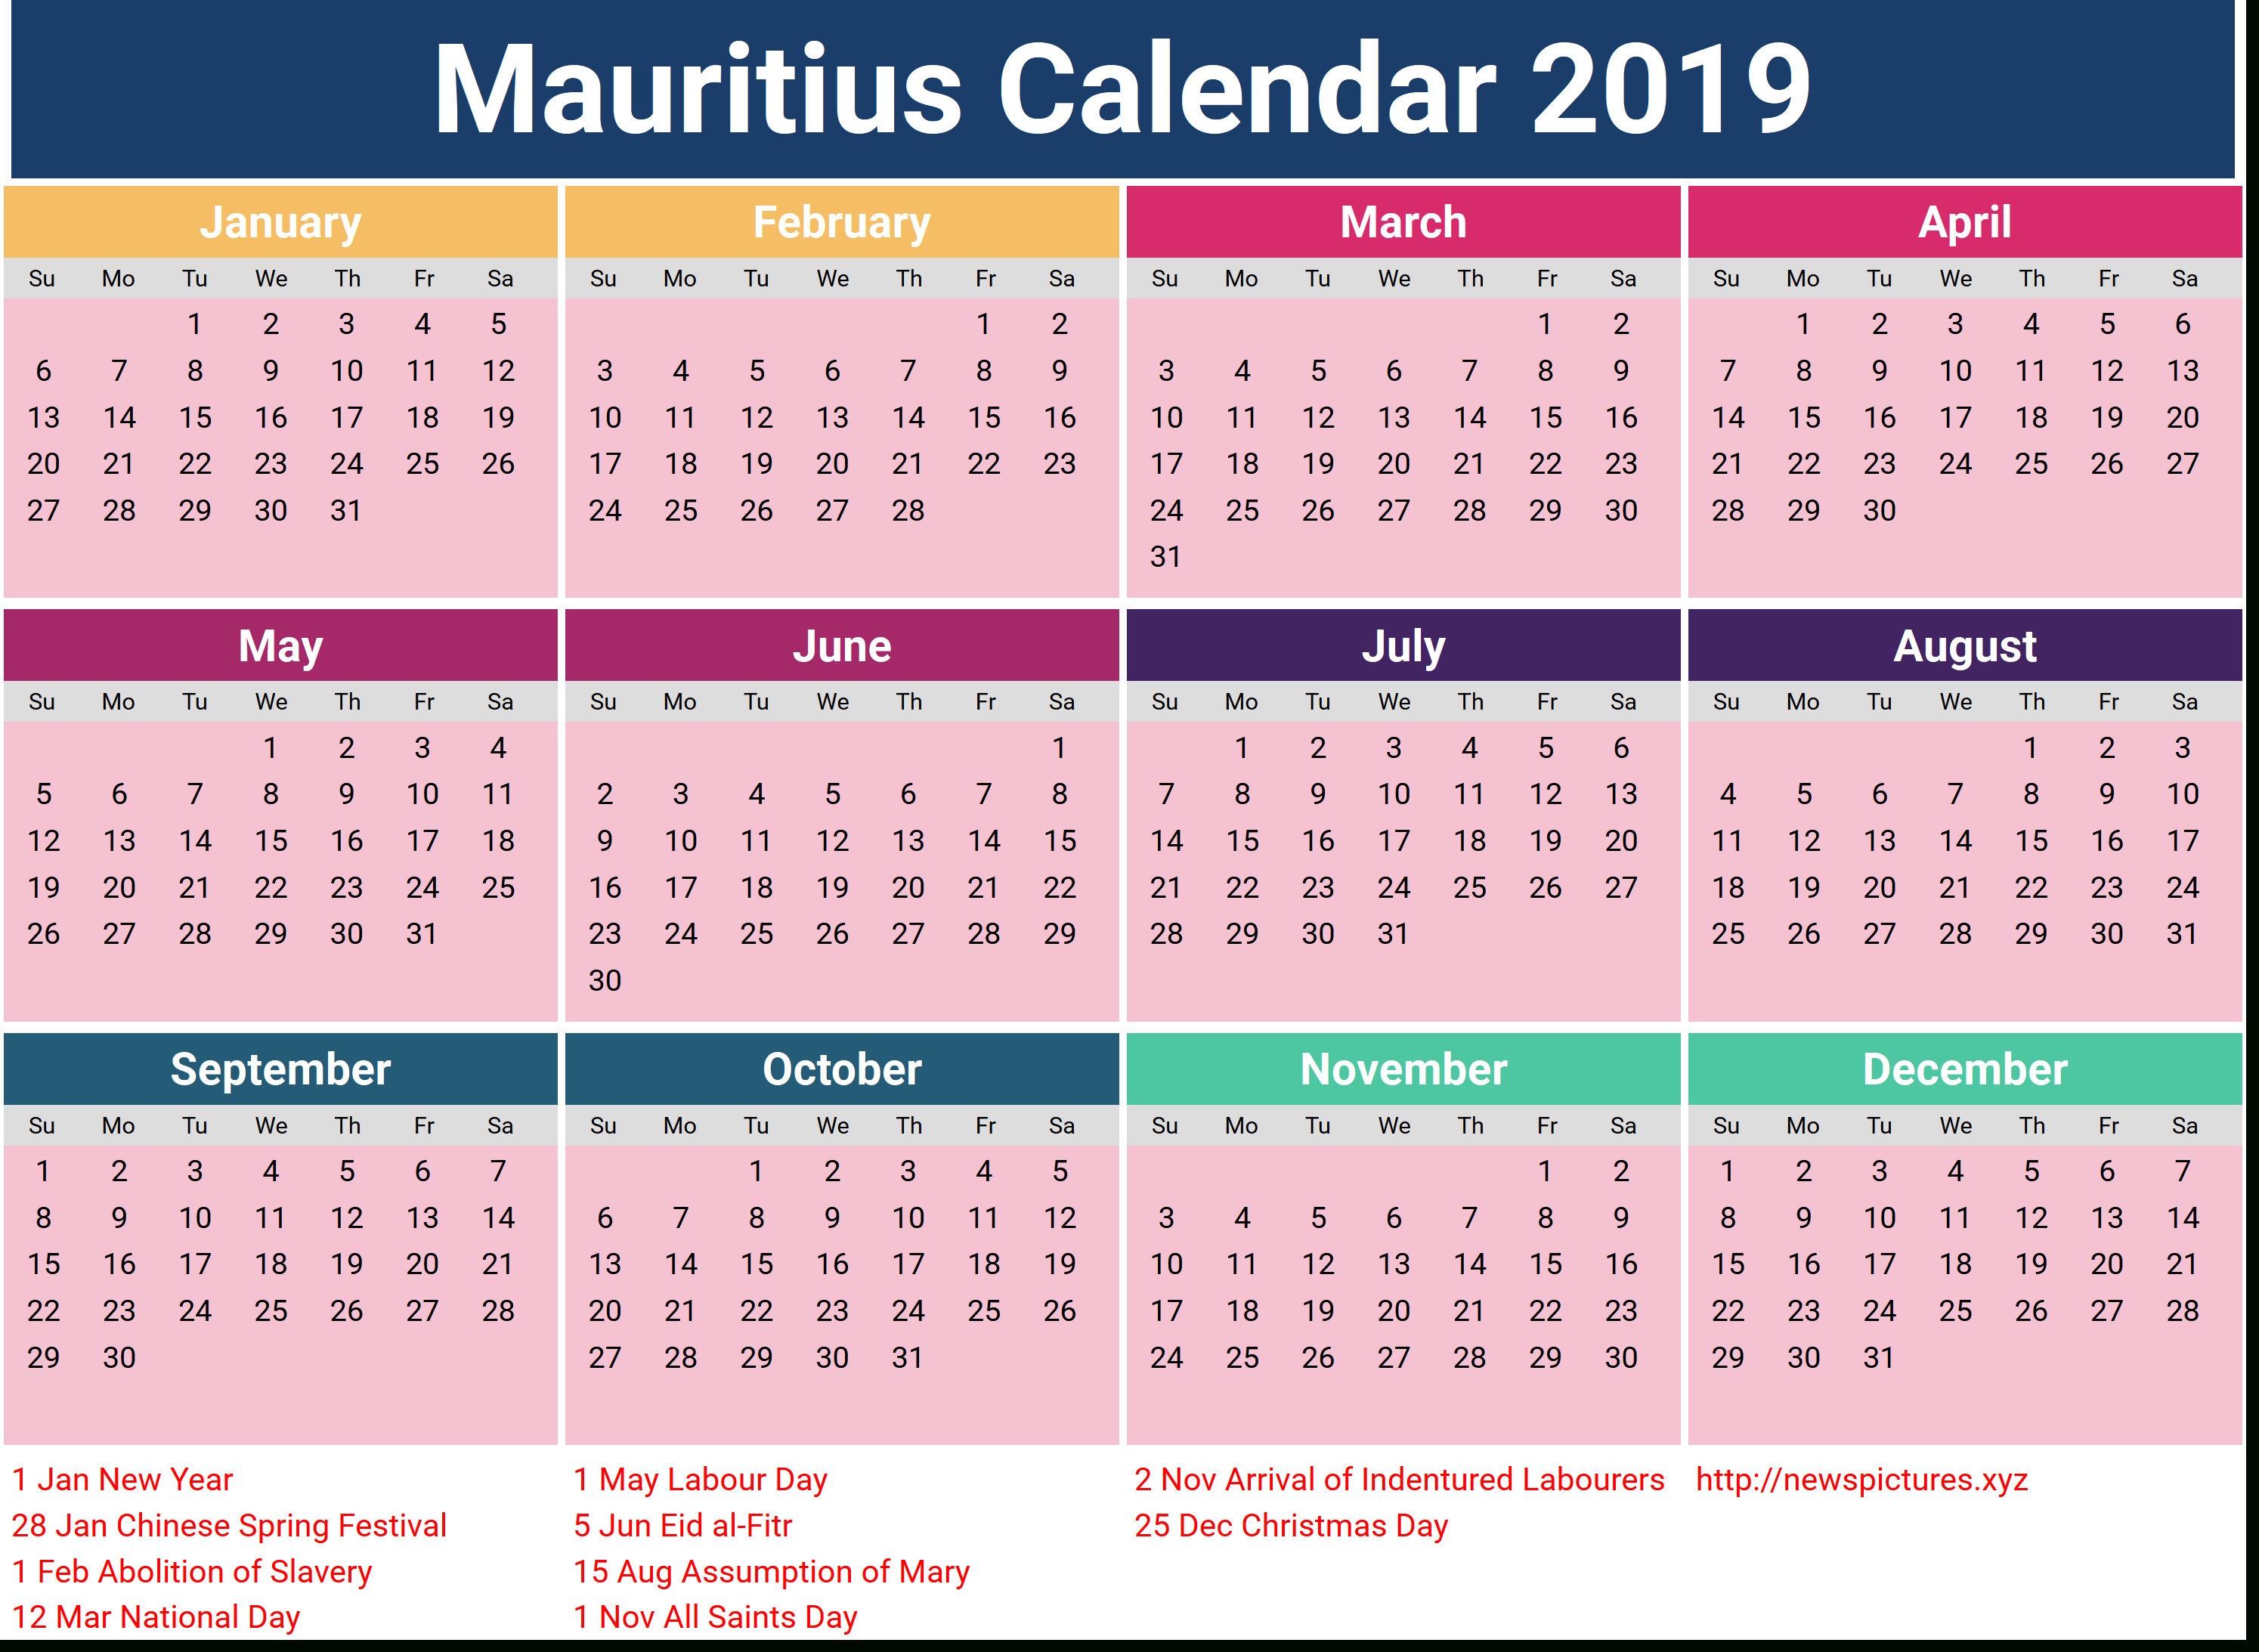 Image For Mauritius Calendar 2019 With Holidays | Calendar intended for Mauritius School Calendar 2020